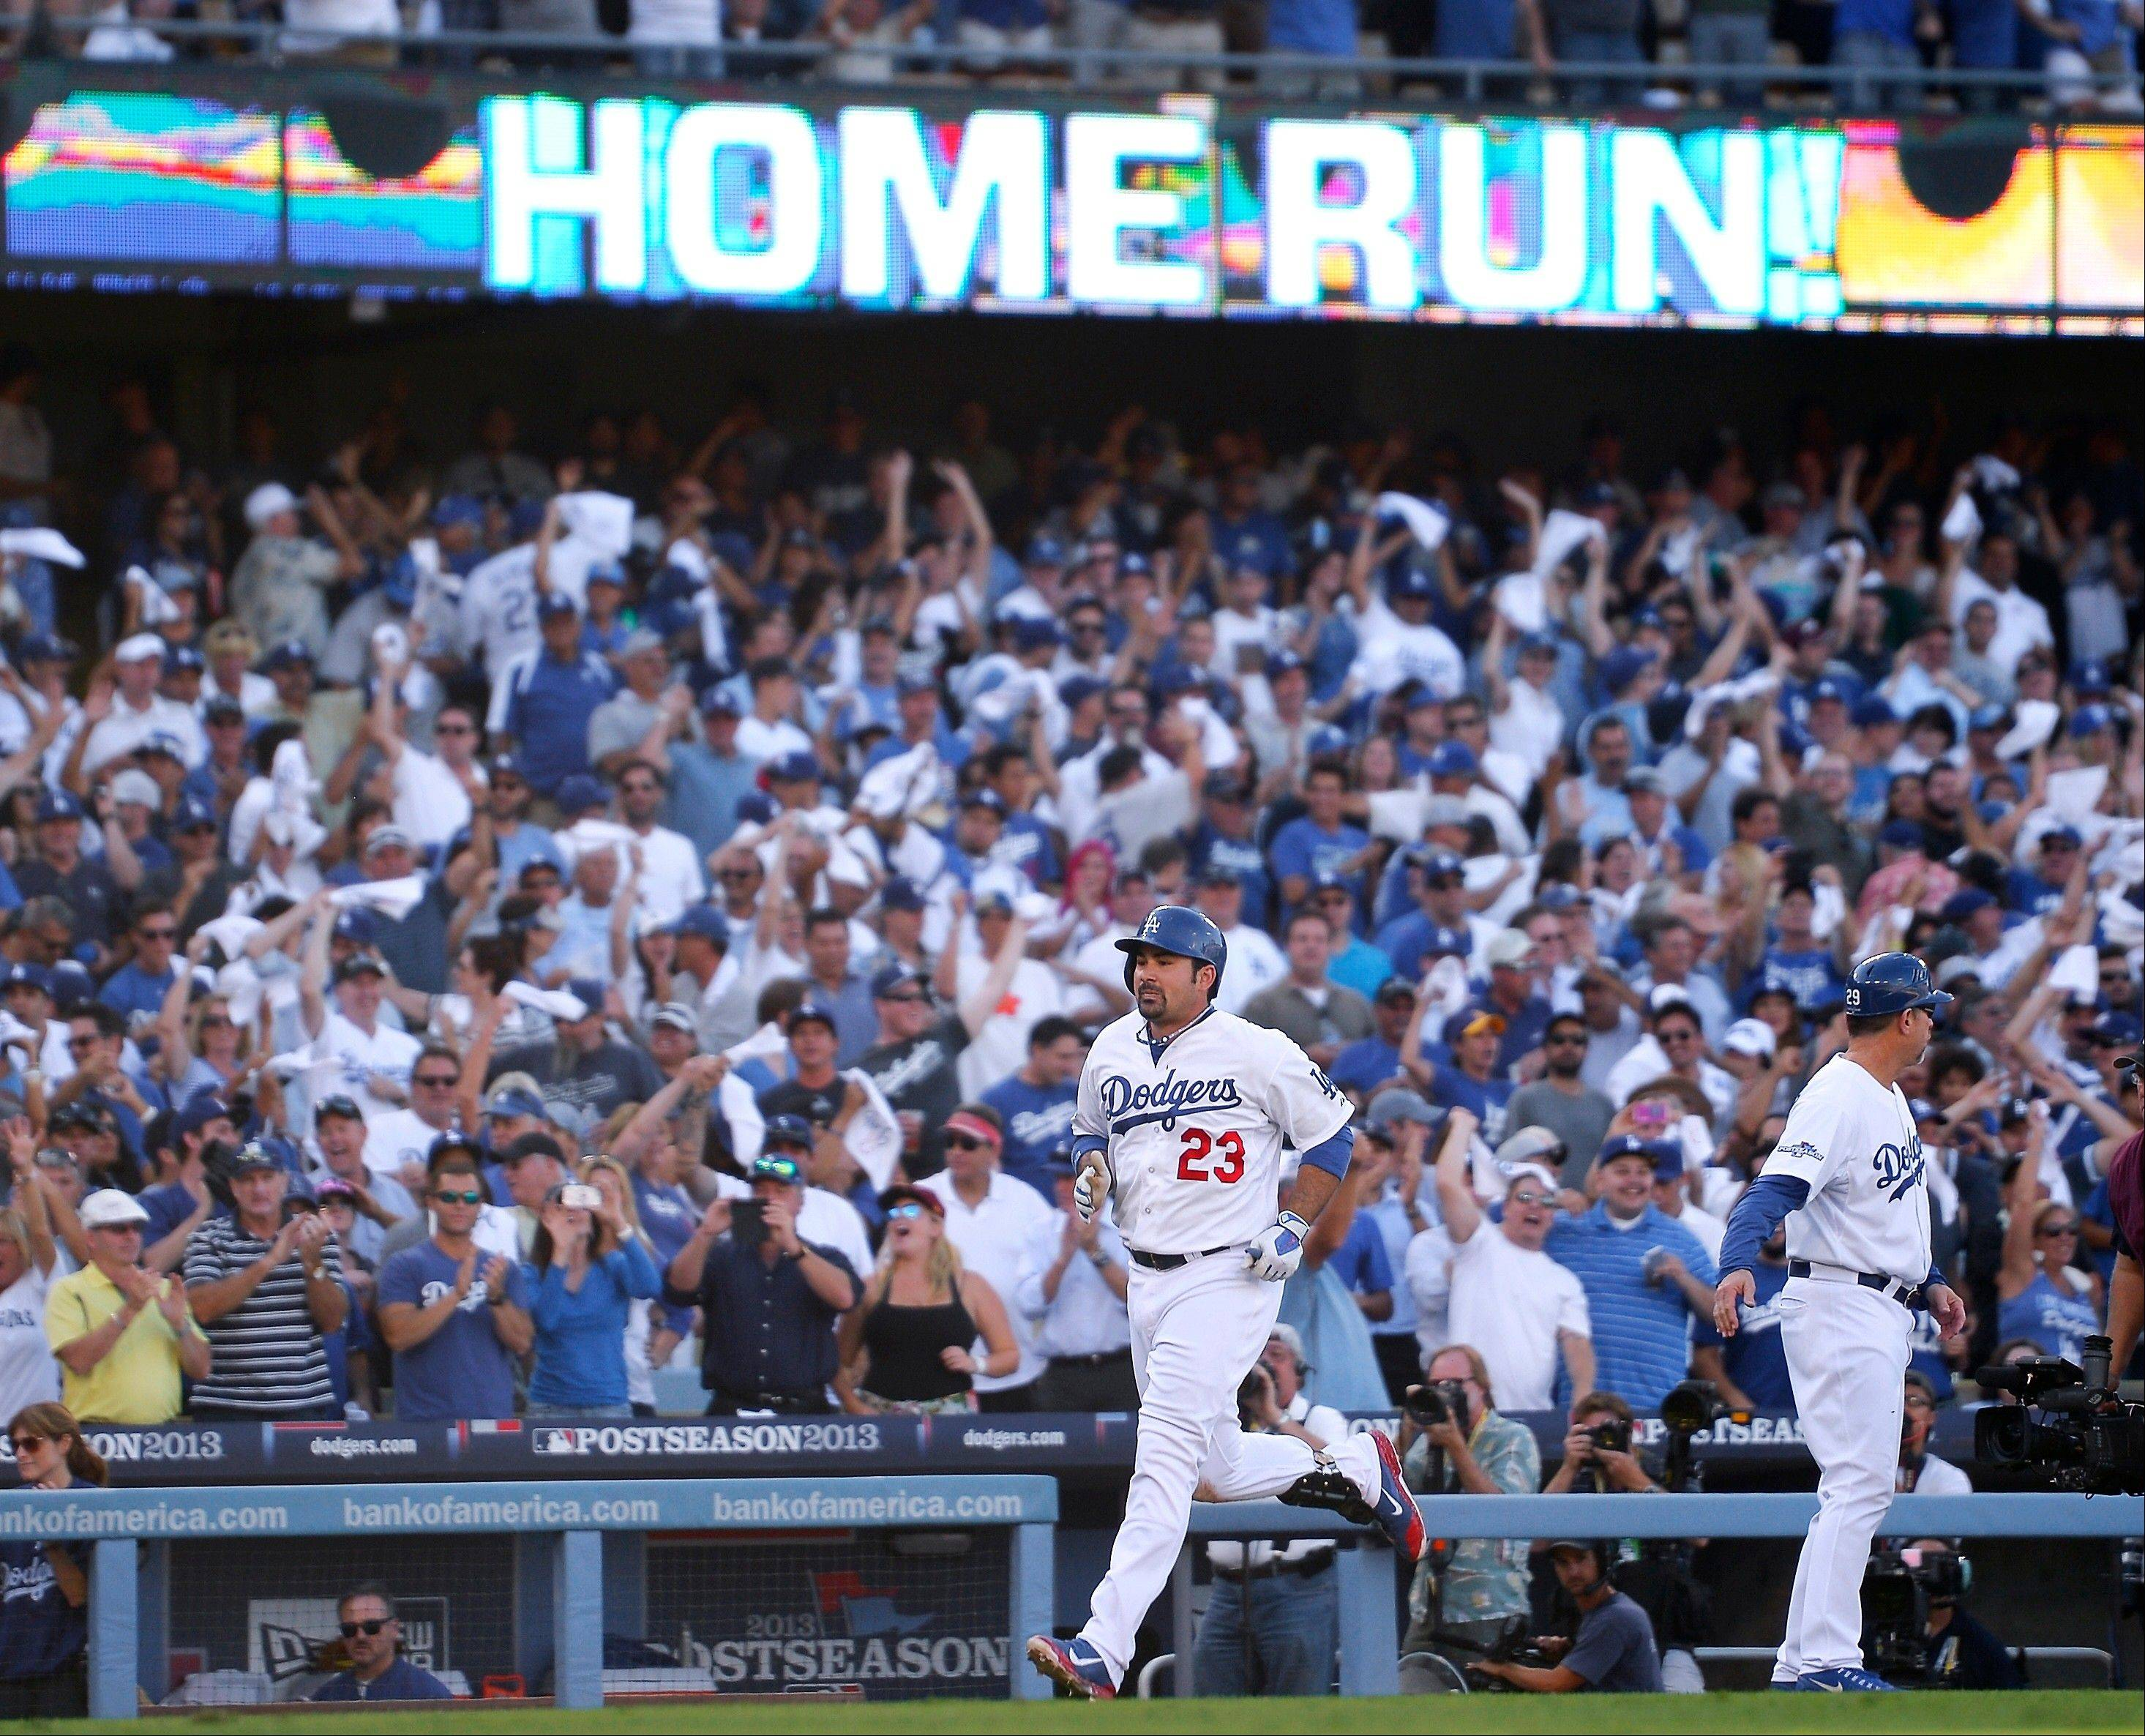 The Dodgers� Adrian Gonzalez rounds the bases after hitting a home run during the eighth inning of Game 5 of the National League Championship Series against the St. Louis Cardinals on Wednesday in Los Angeles. The Dodgers won 6-4.